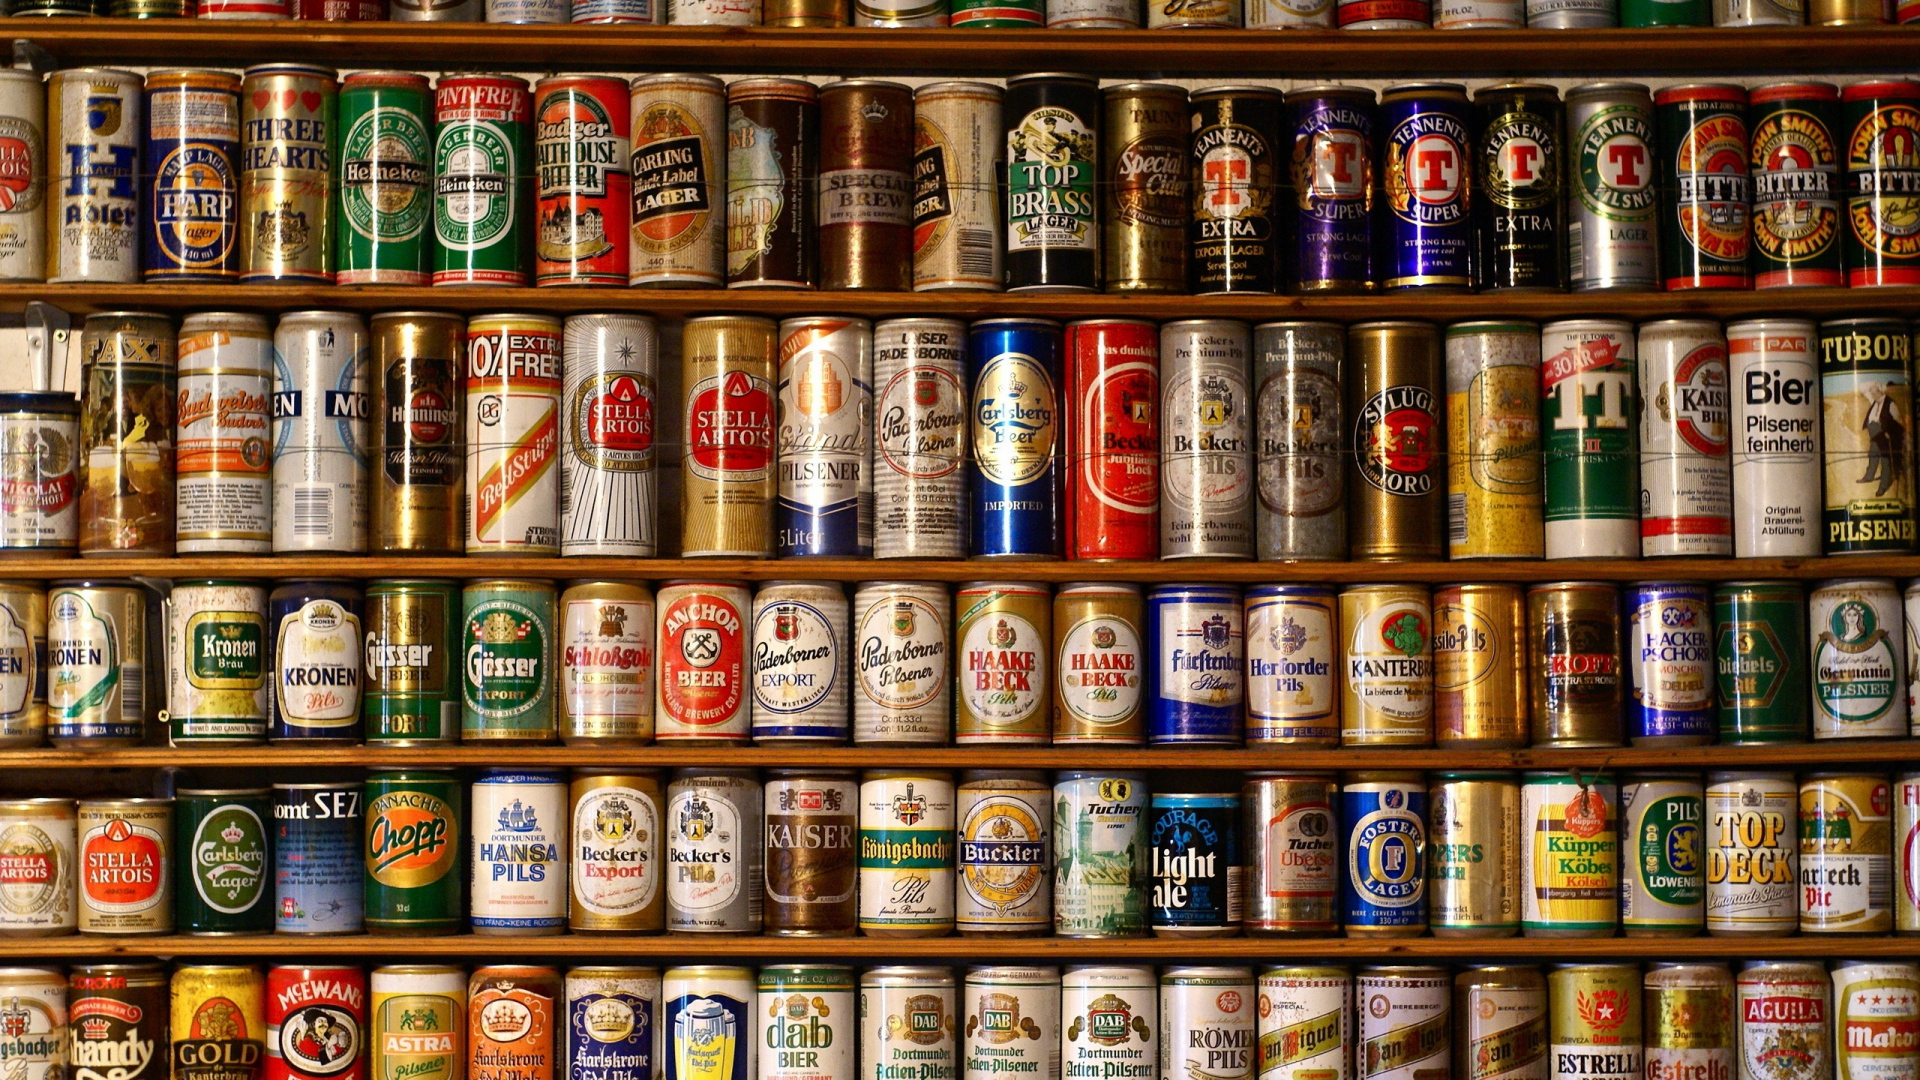 Cool-display-of-collected-beer-cans-One-of-my-many-collections-as-a-kid-wallpaper-wpc9003750